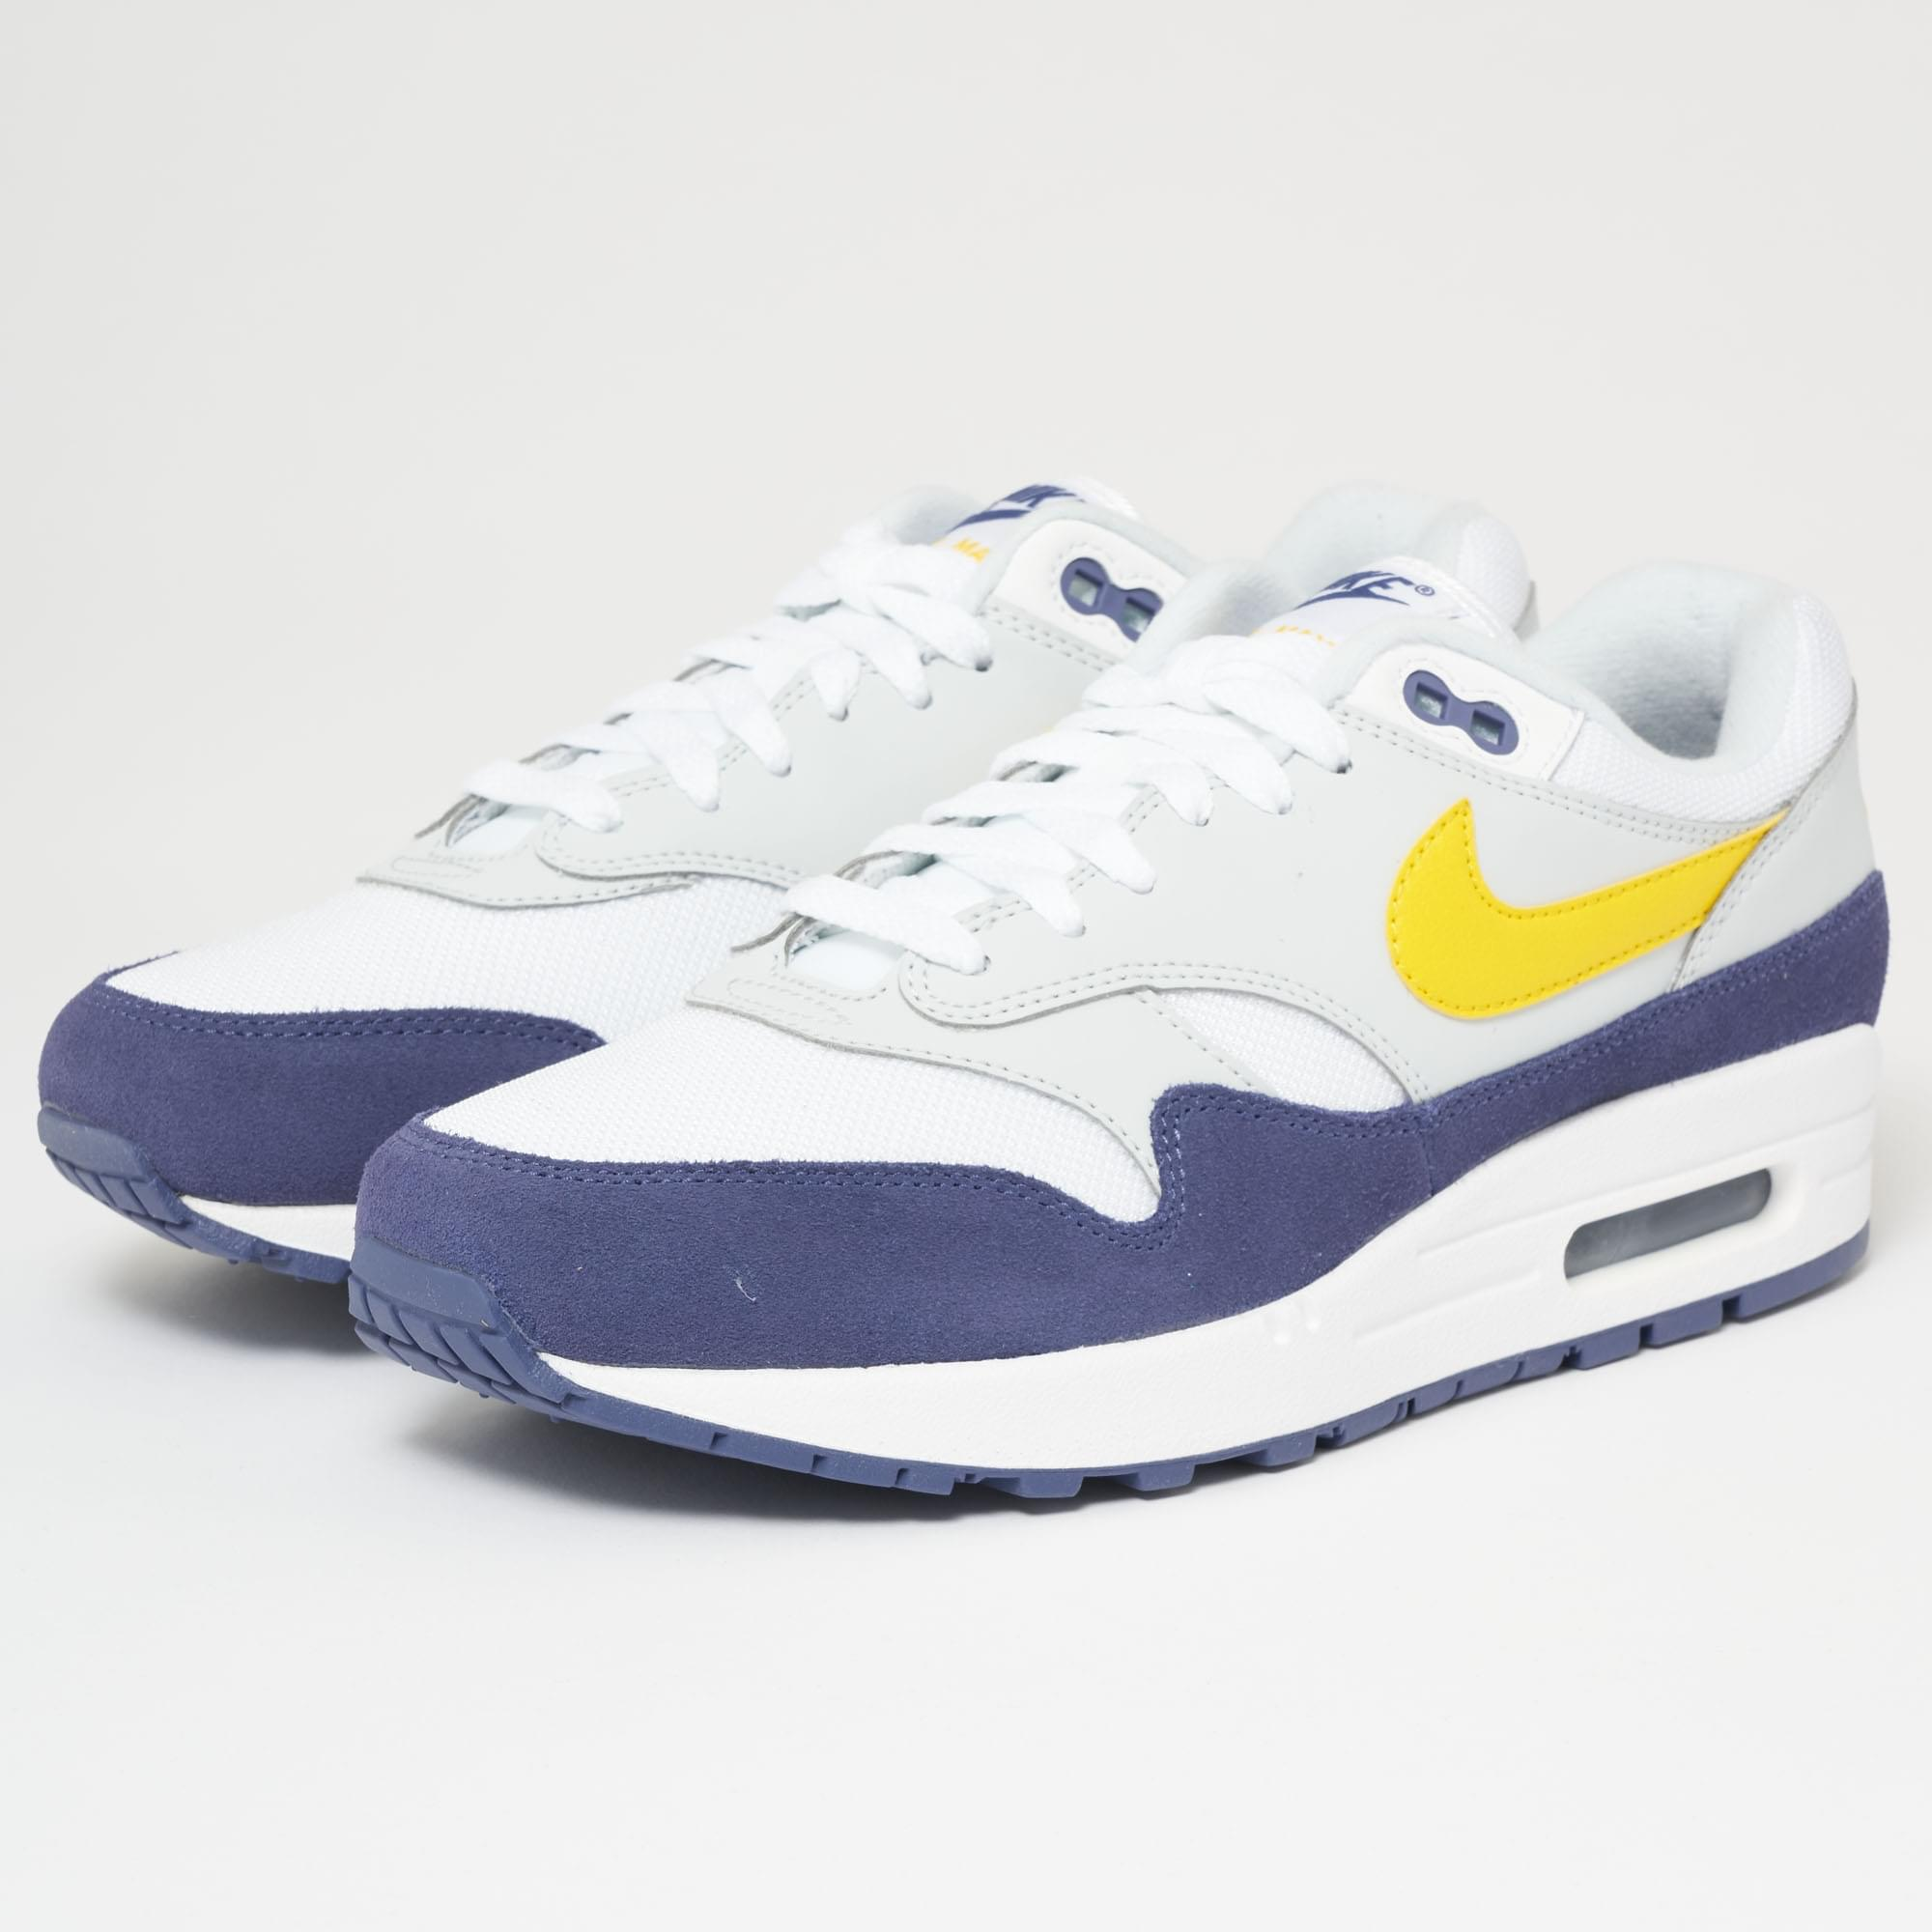 timeless design ad44c 1e82f Nike Air Max 1 - White, Blue Recall, Pure Platinum   Tour Yellow in ...